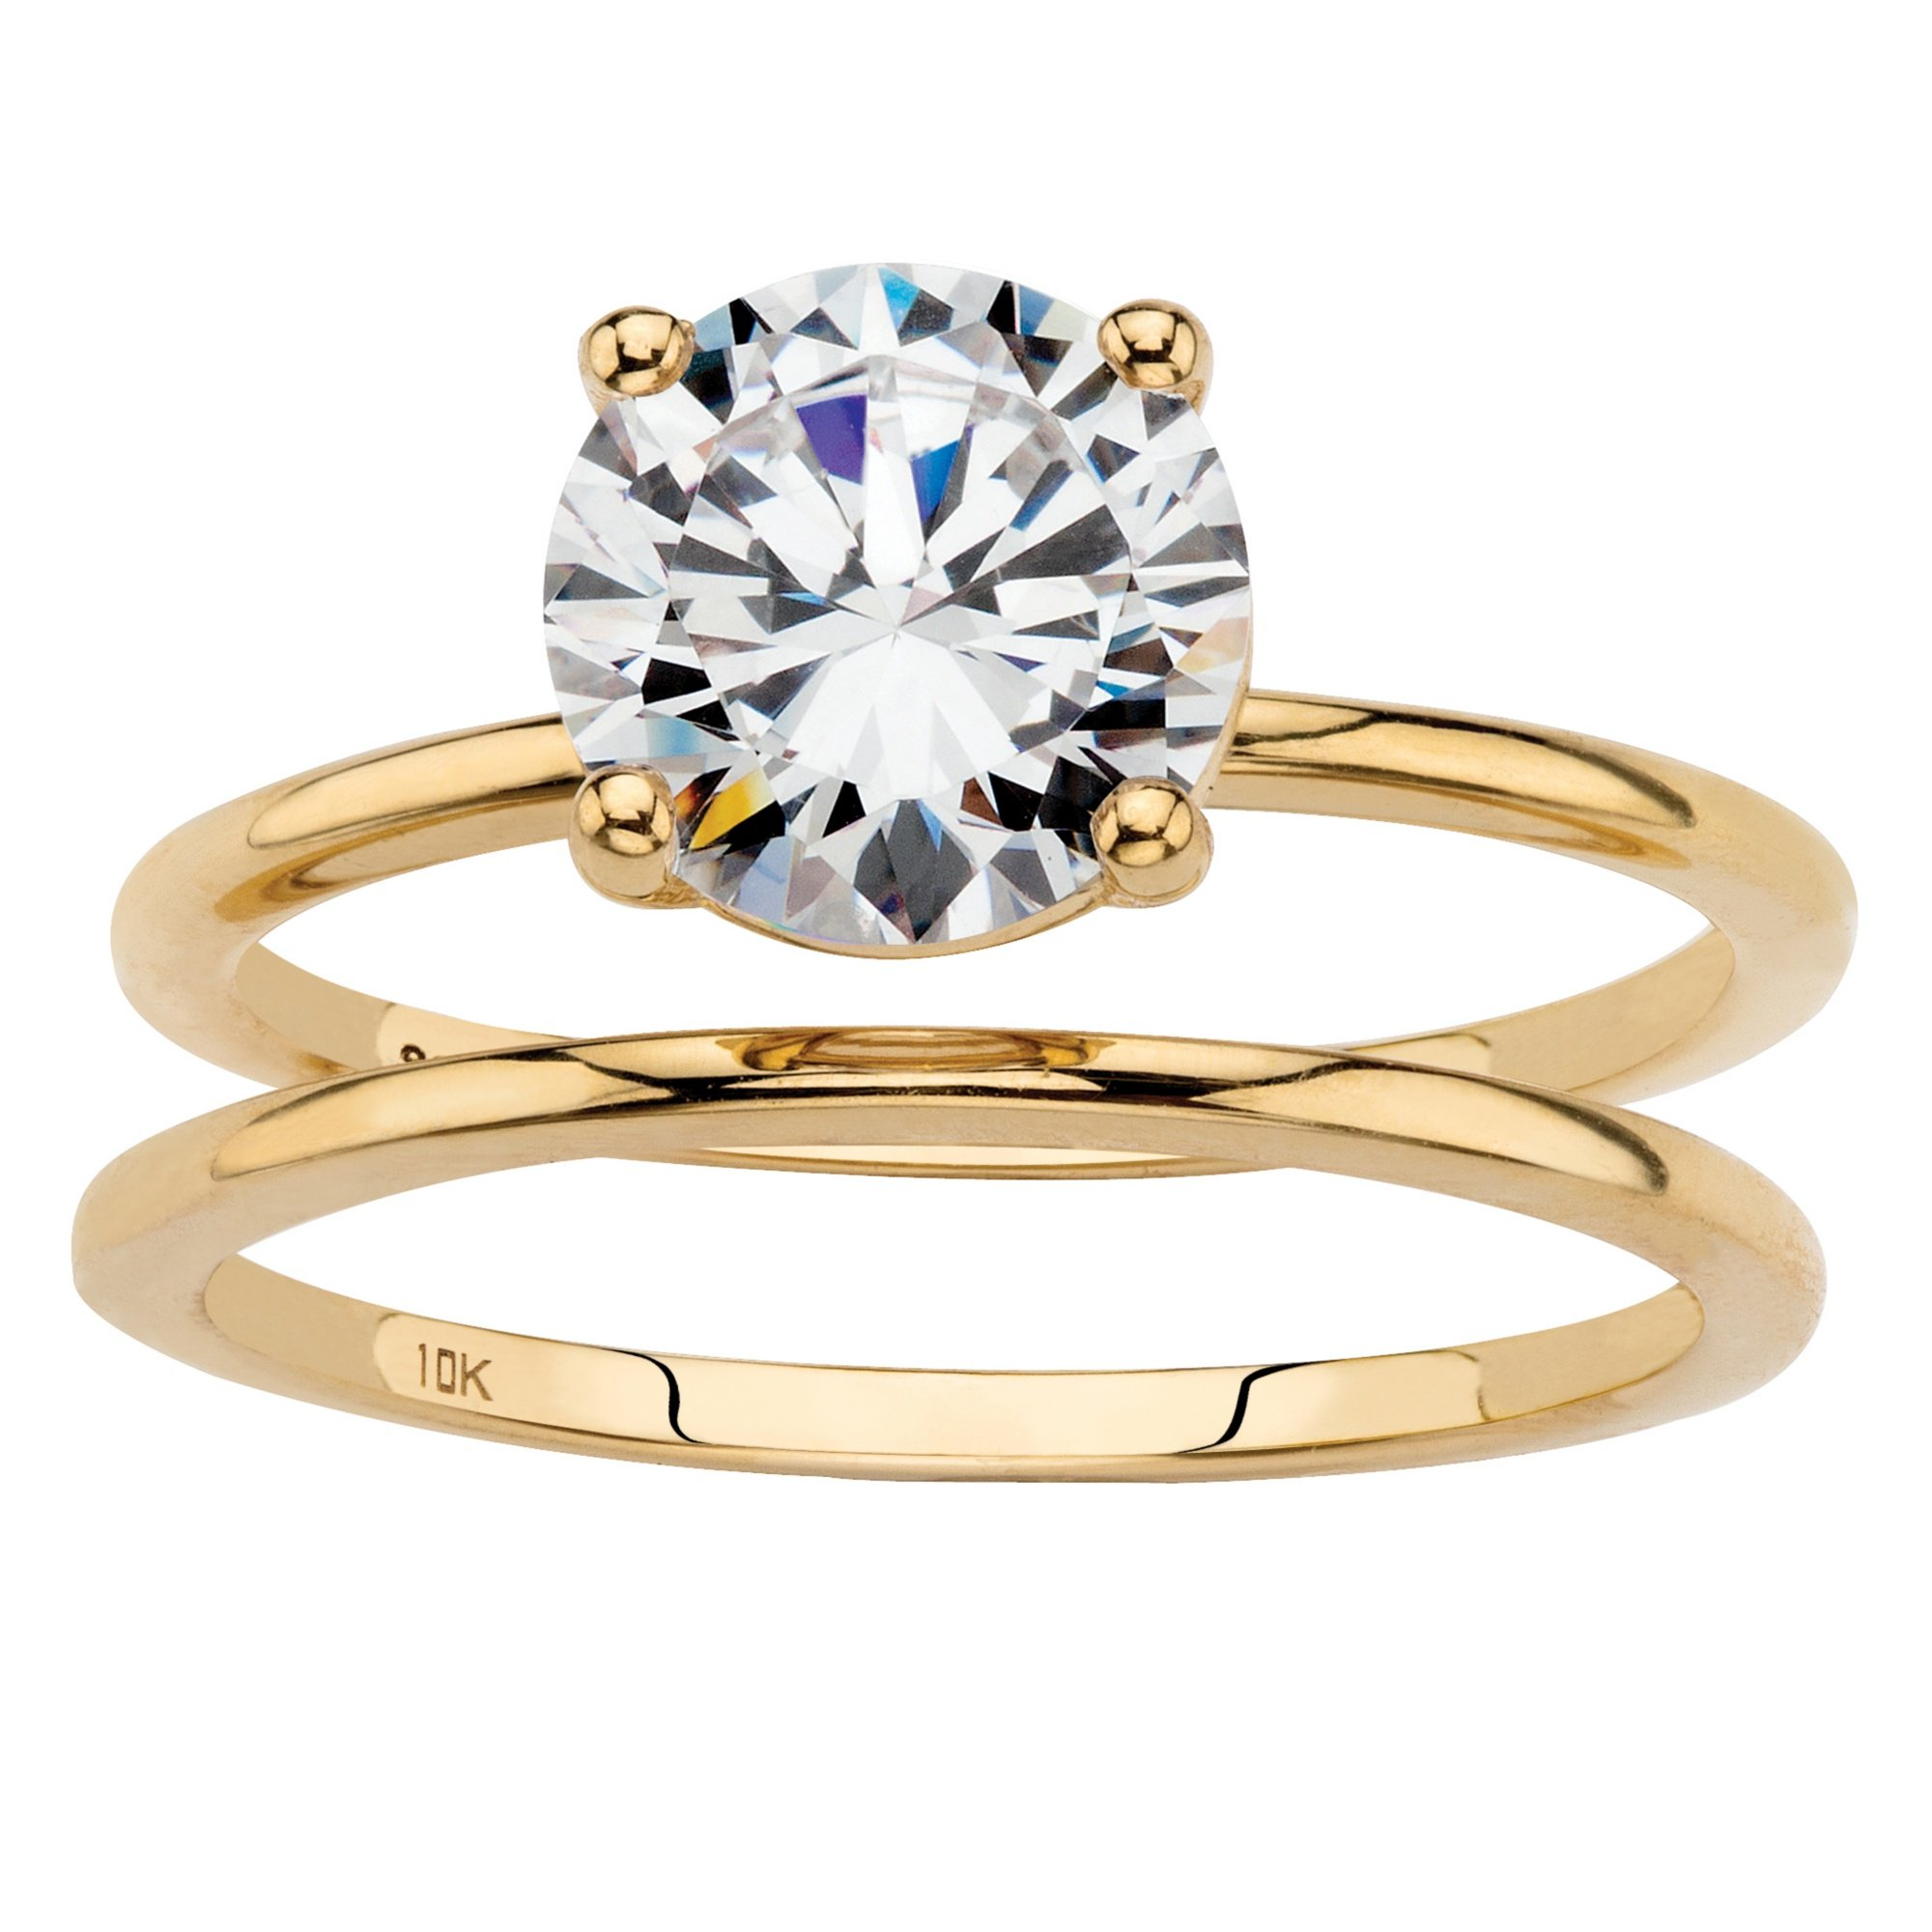 Solid 10K Yellow Gold 2-Piece Solitaire Bridal Ring Set, Round Cubic Zirconia Size 8